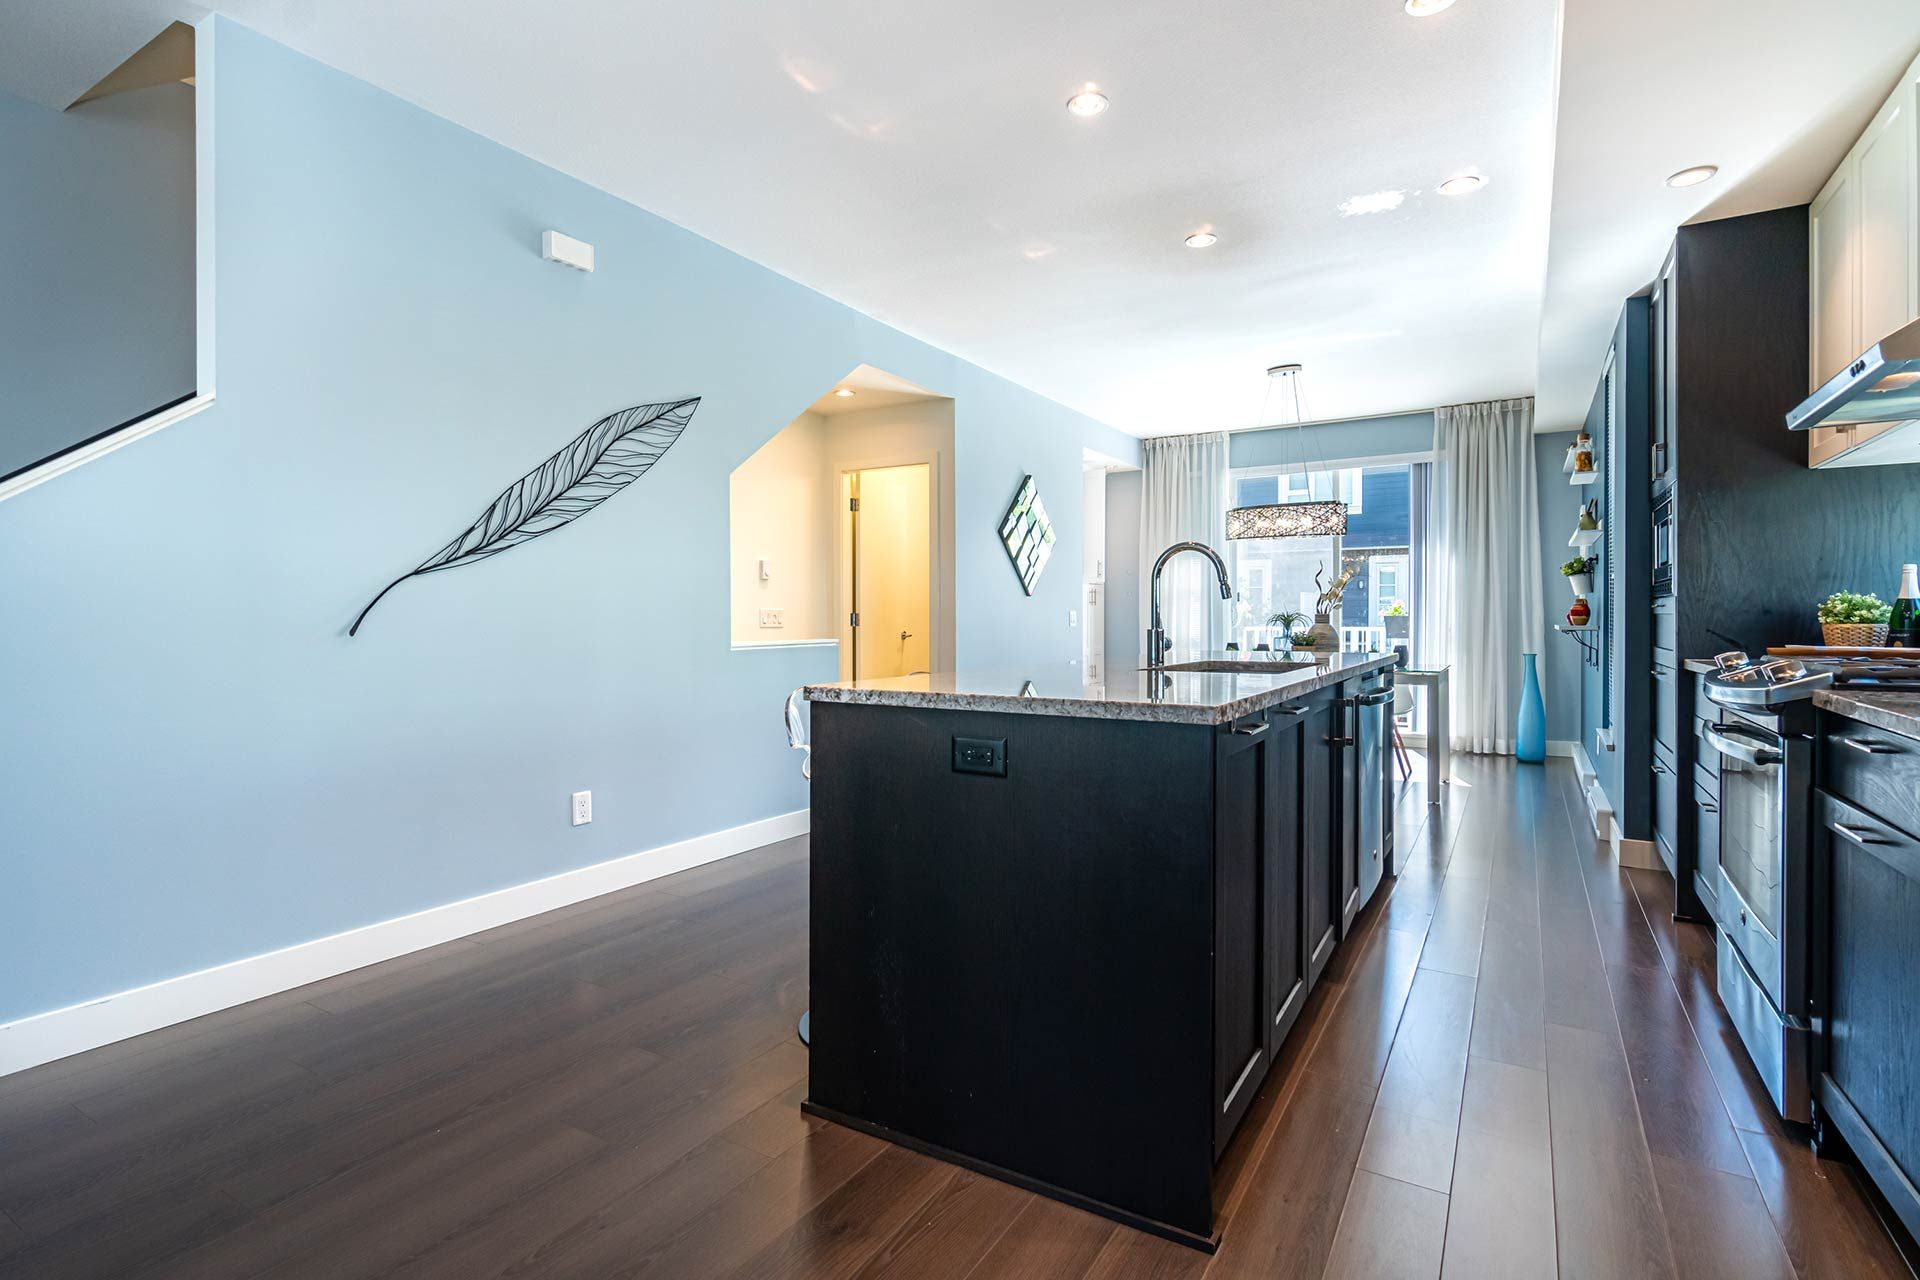 """Photo 9: Photos: 154 548 FOSTER Avenue in Coquitlam: Coquitlam West Townhouse for sale in """"BLACK + WHITE"""" : MLS®# R2587208"""